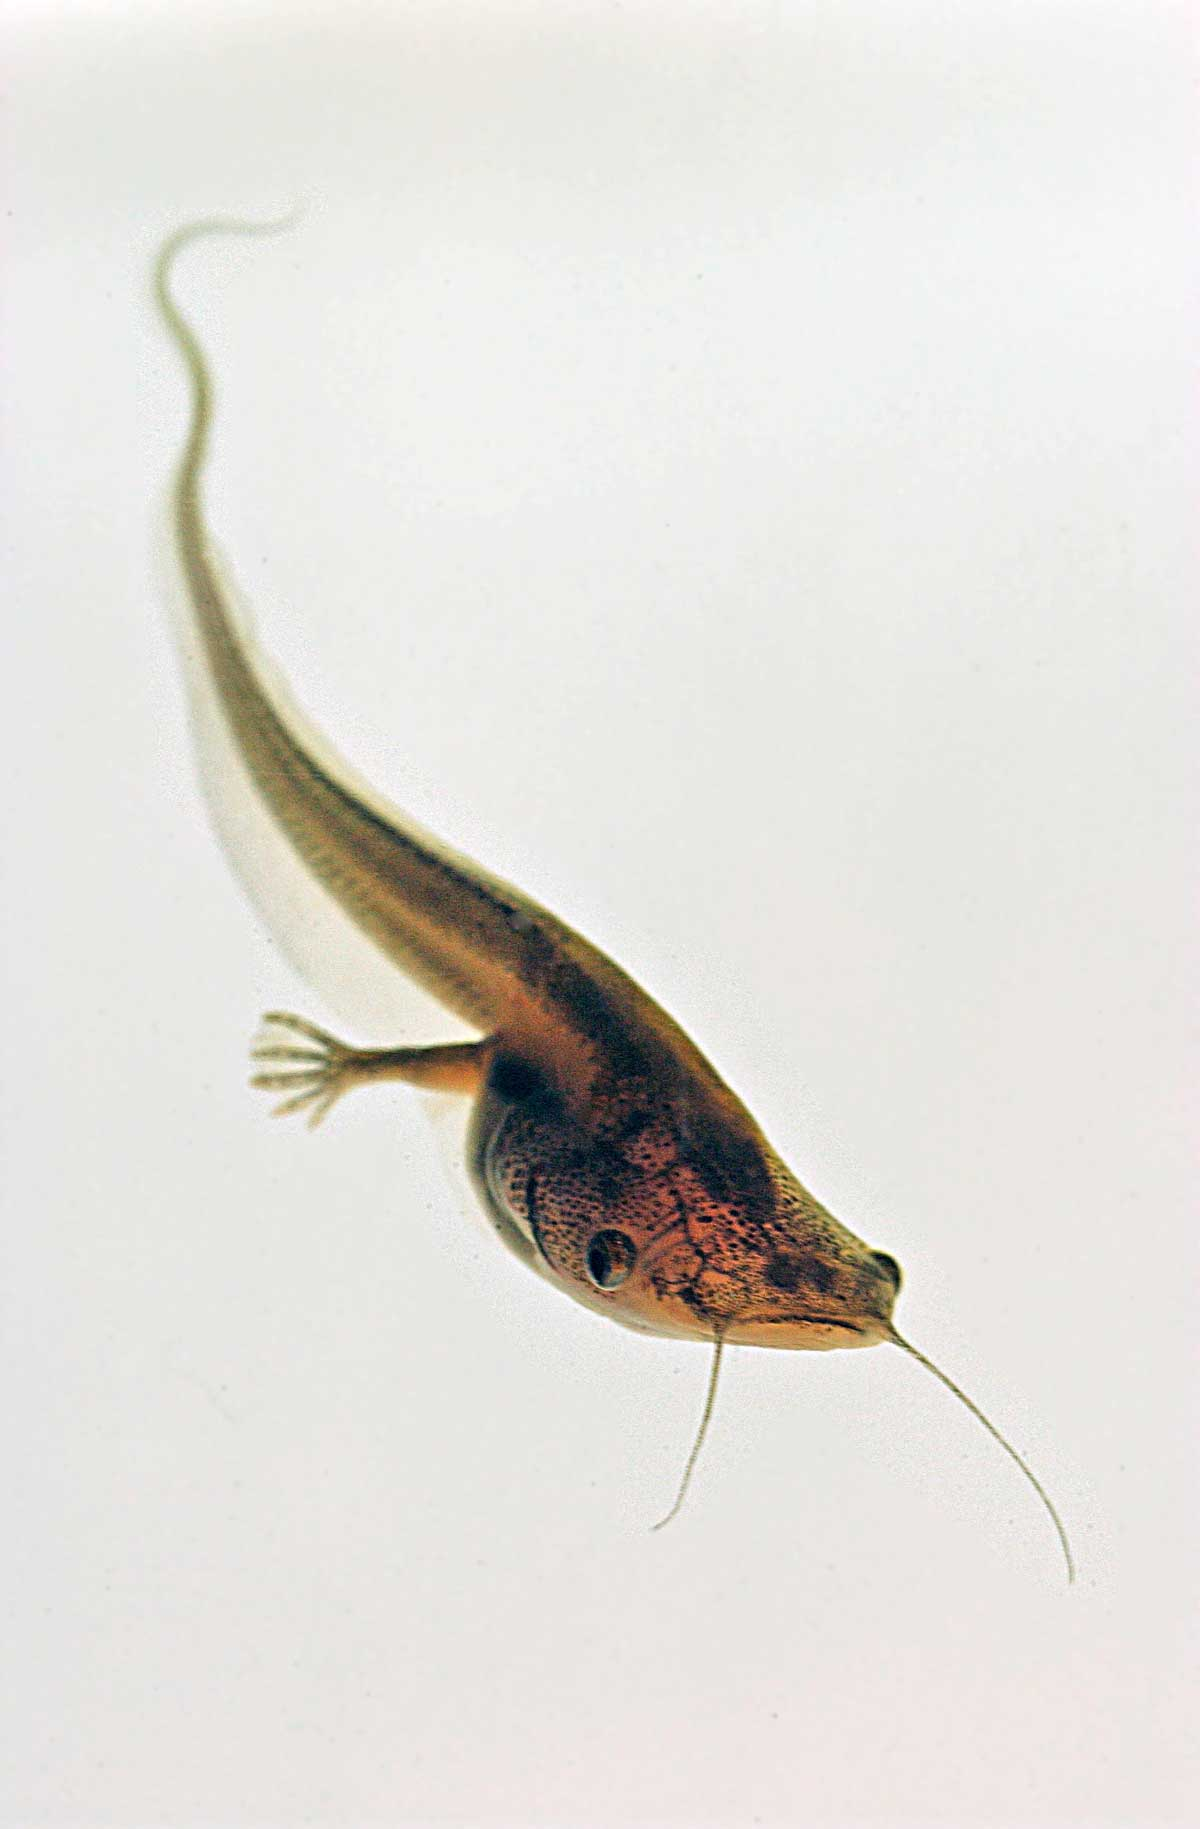 Developmental biologist Robert Denver studies the role of the hormone leptin in the metamorphosis of Xenopus laevis tadpoles. Image credit: David Bay